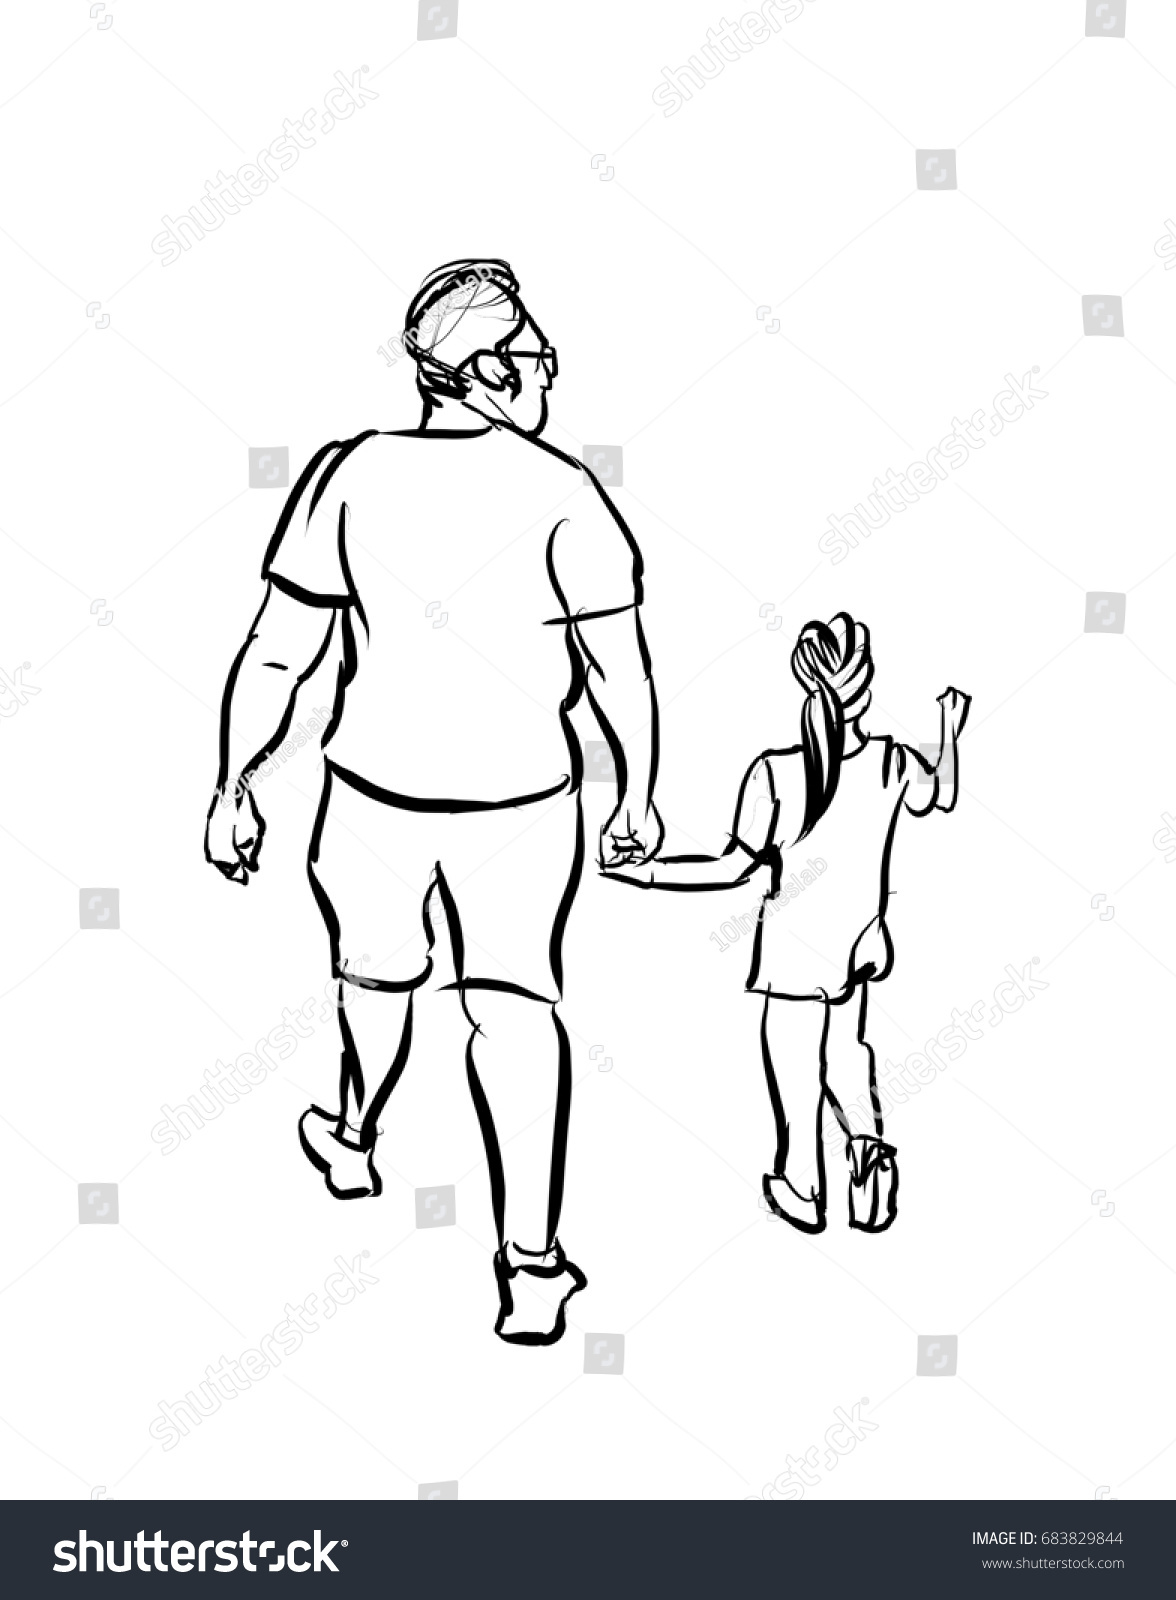 Father and daughter cartoon sketch isolated